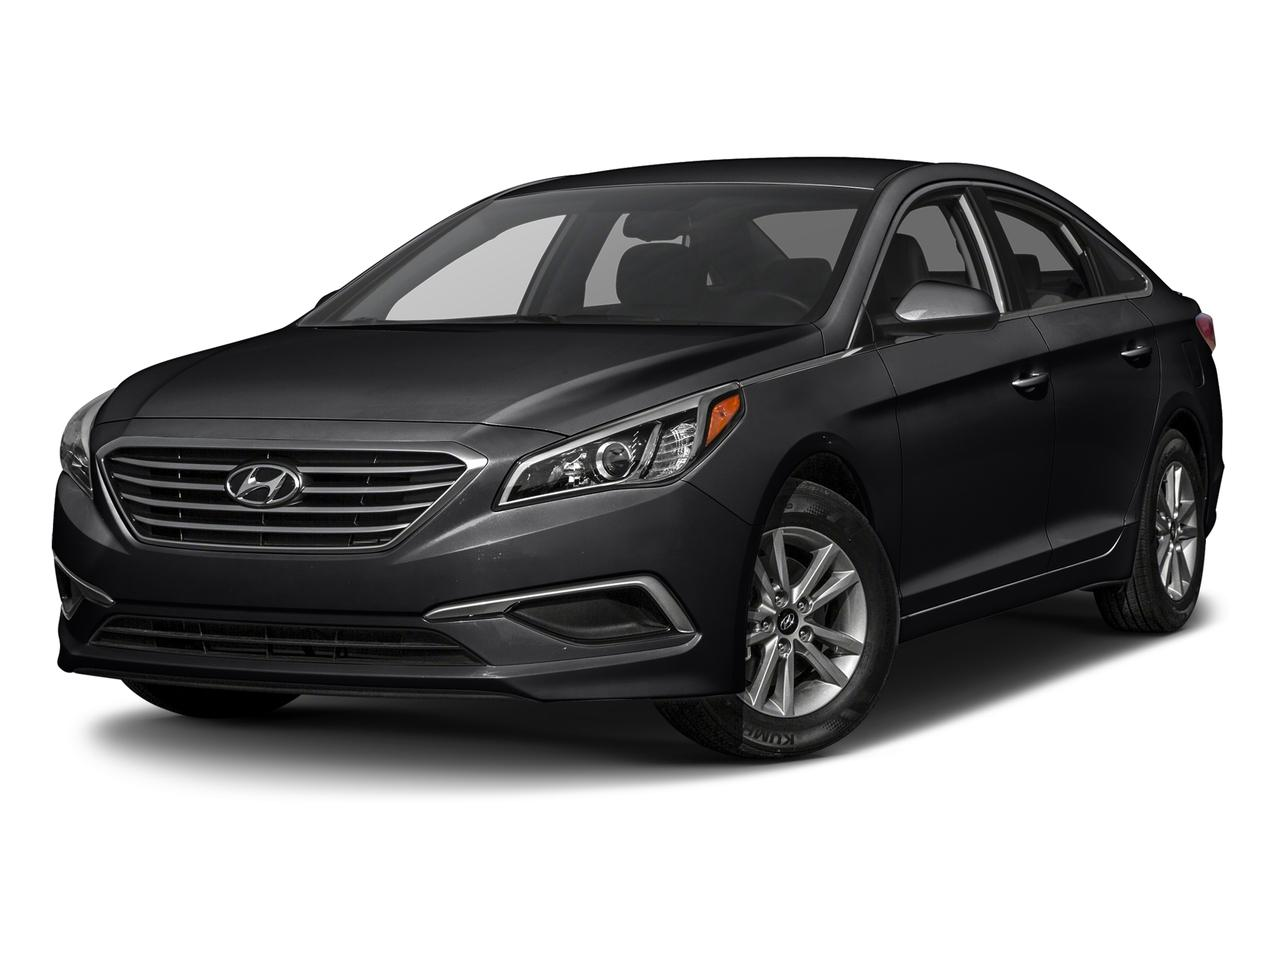 2017 Hyundai Sonata Vehicle Photo in Mission, TX 78572